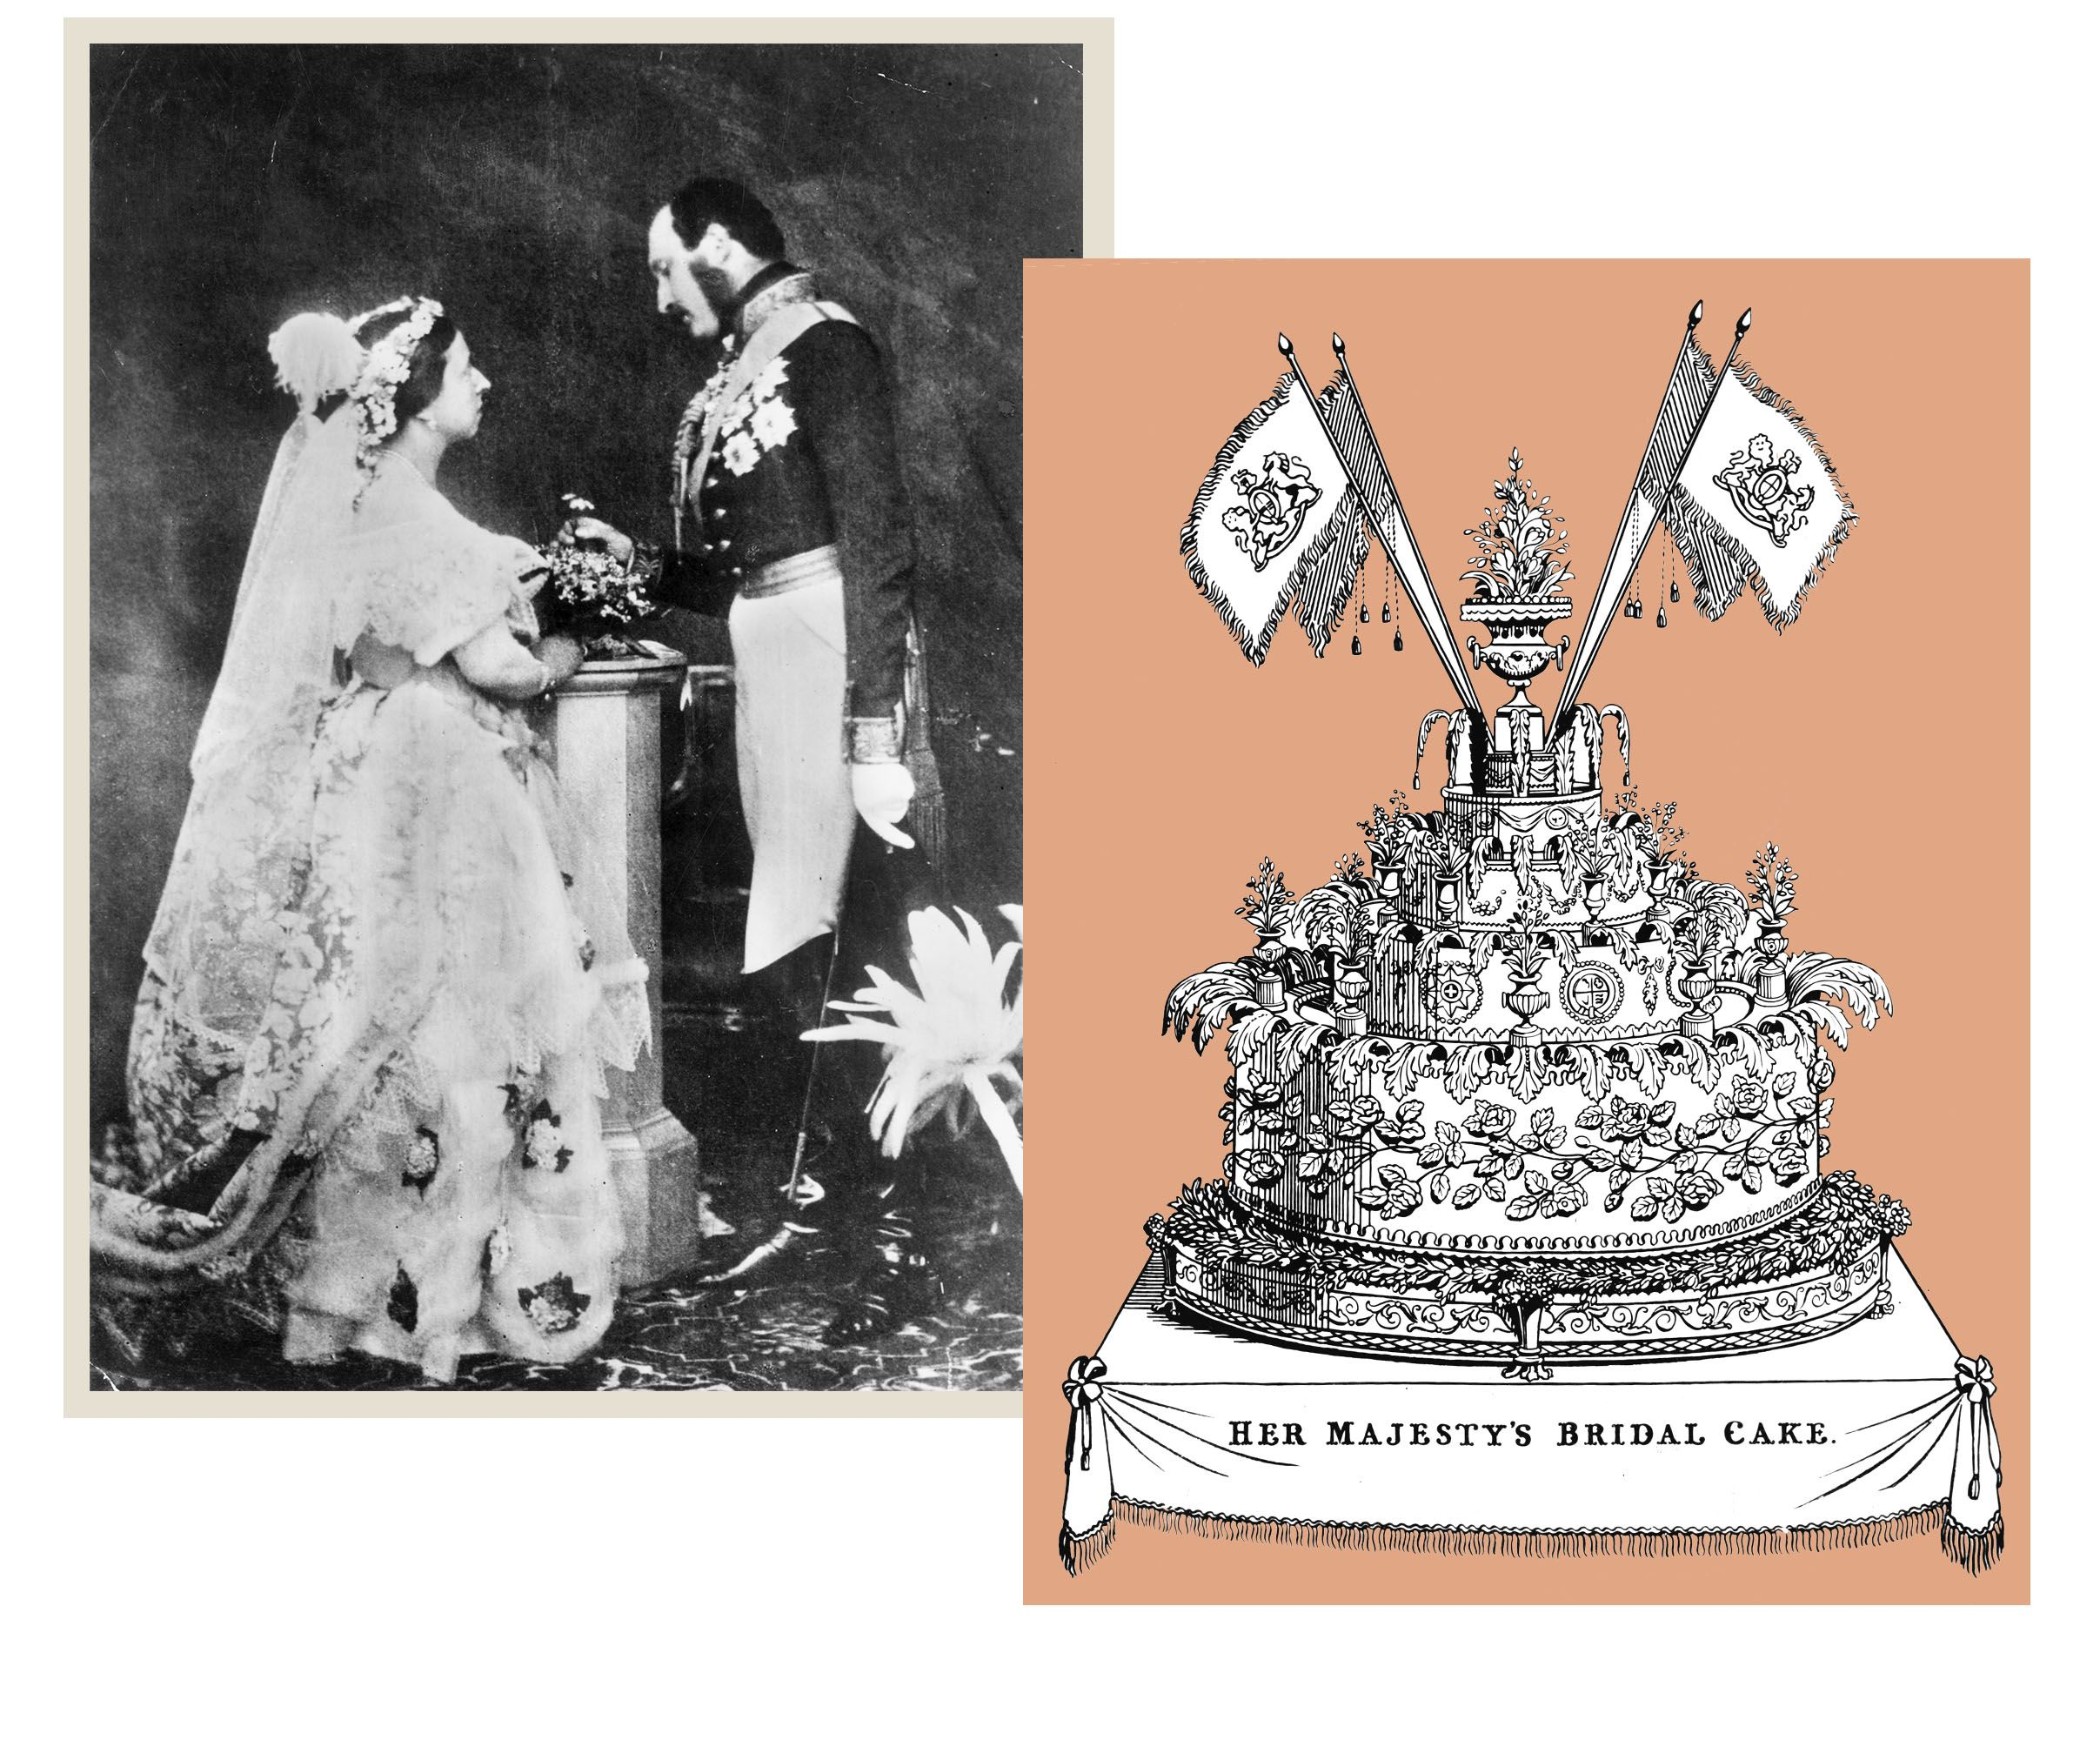 History of Royal Weddings